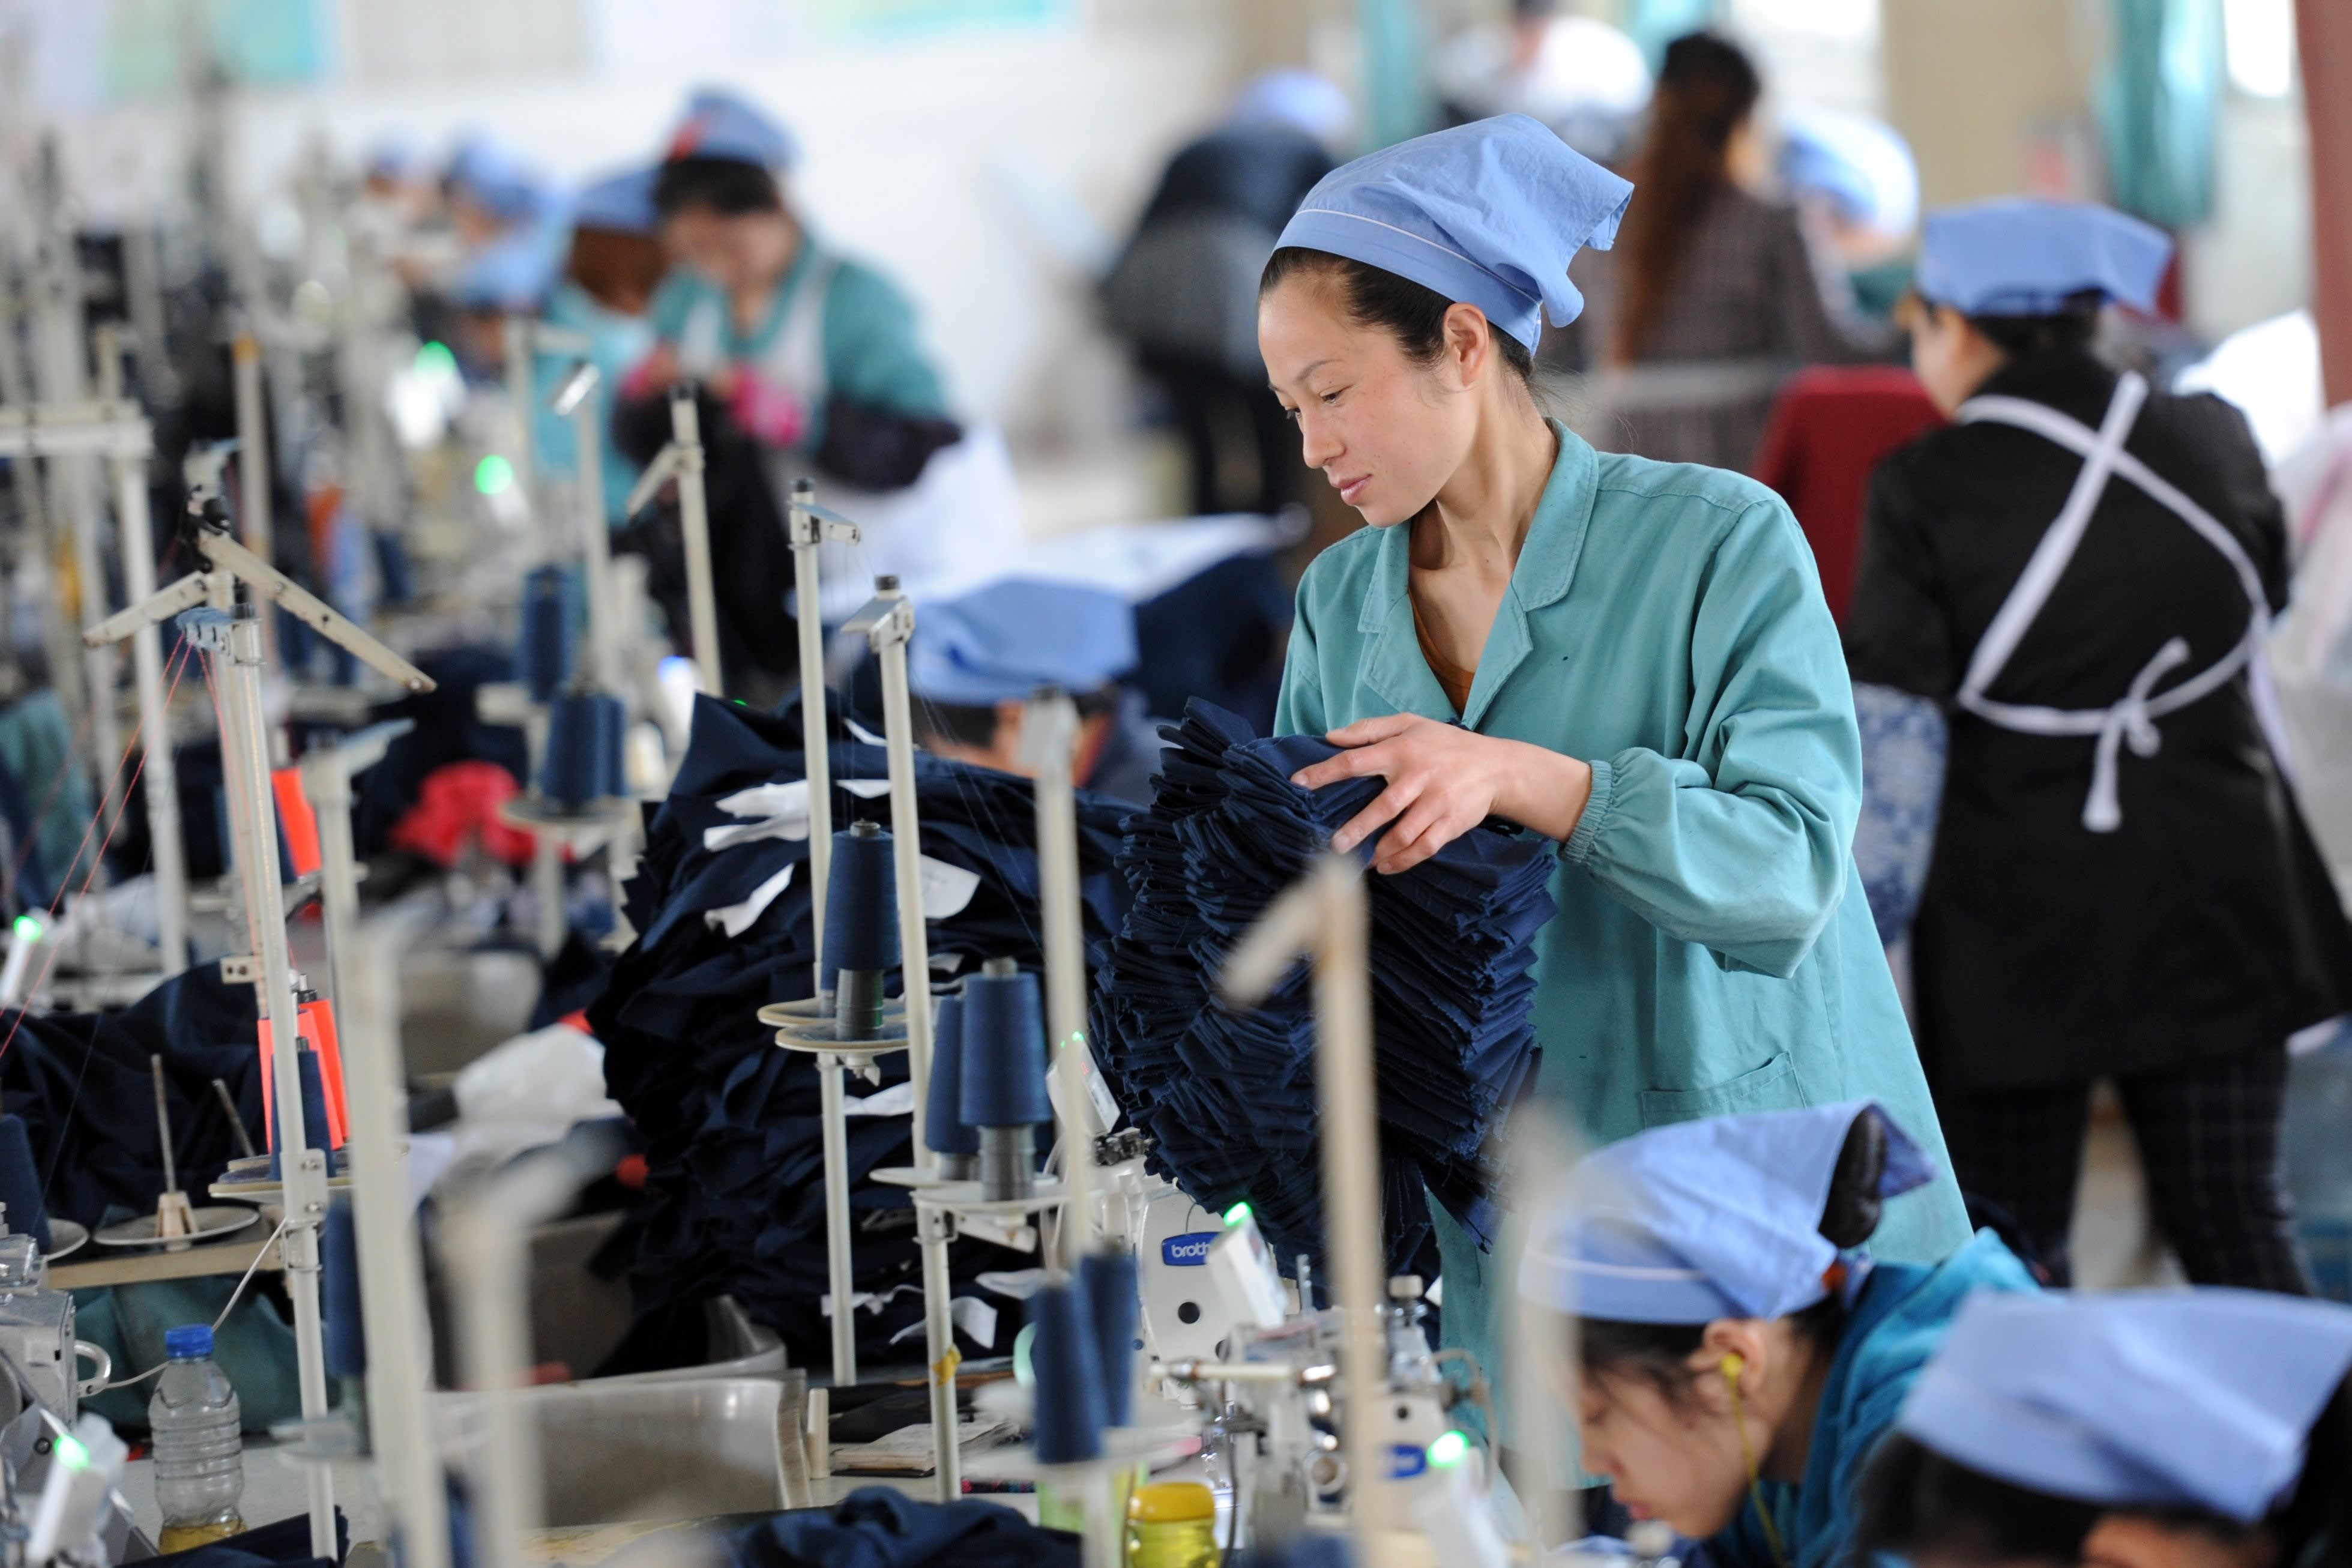 Trump wants US companies to leave China. Here's what it could mean for Chinese businesses